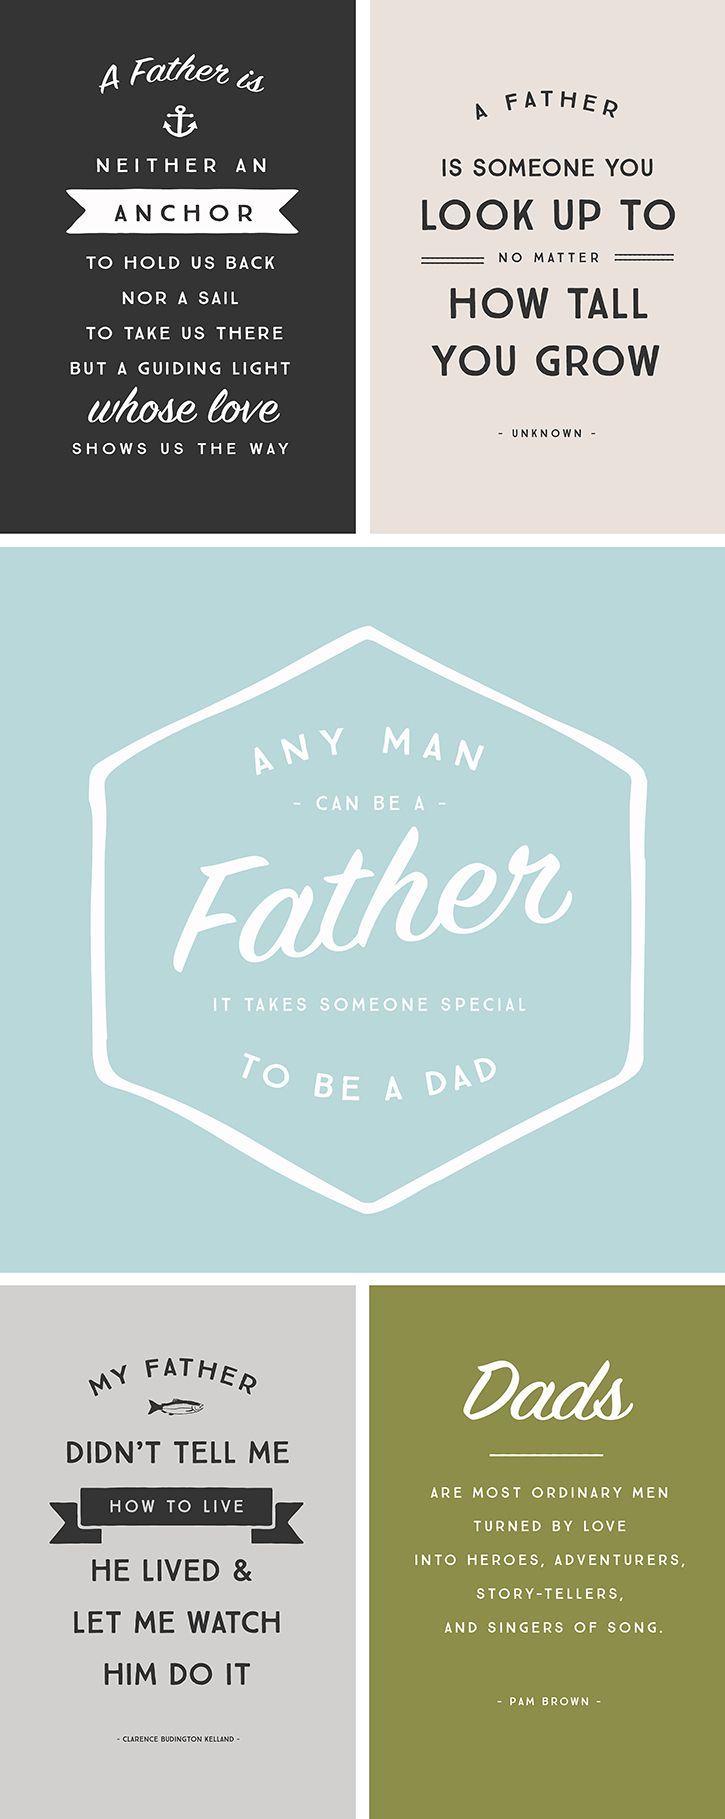 Happy father's day my daddy in heaven